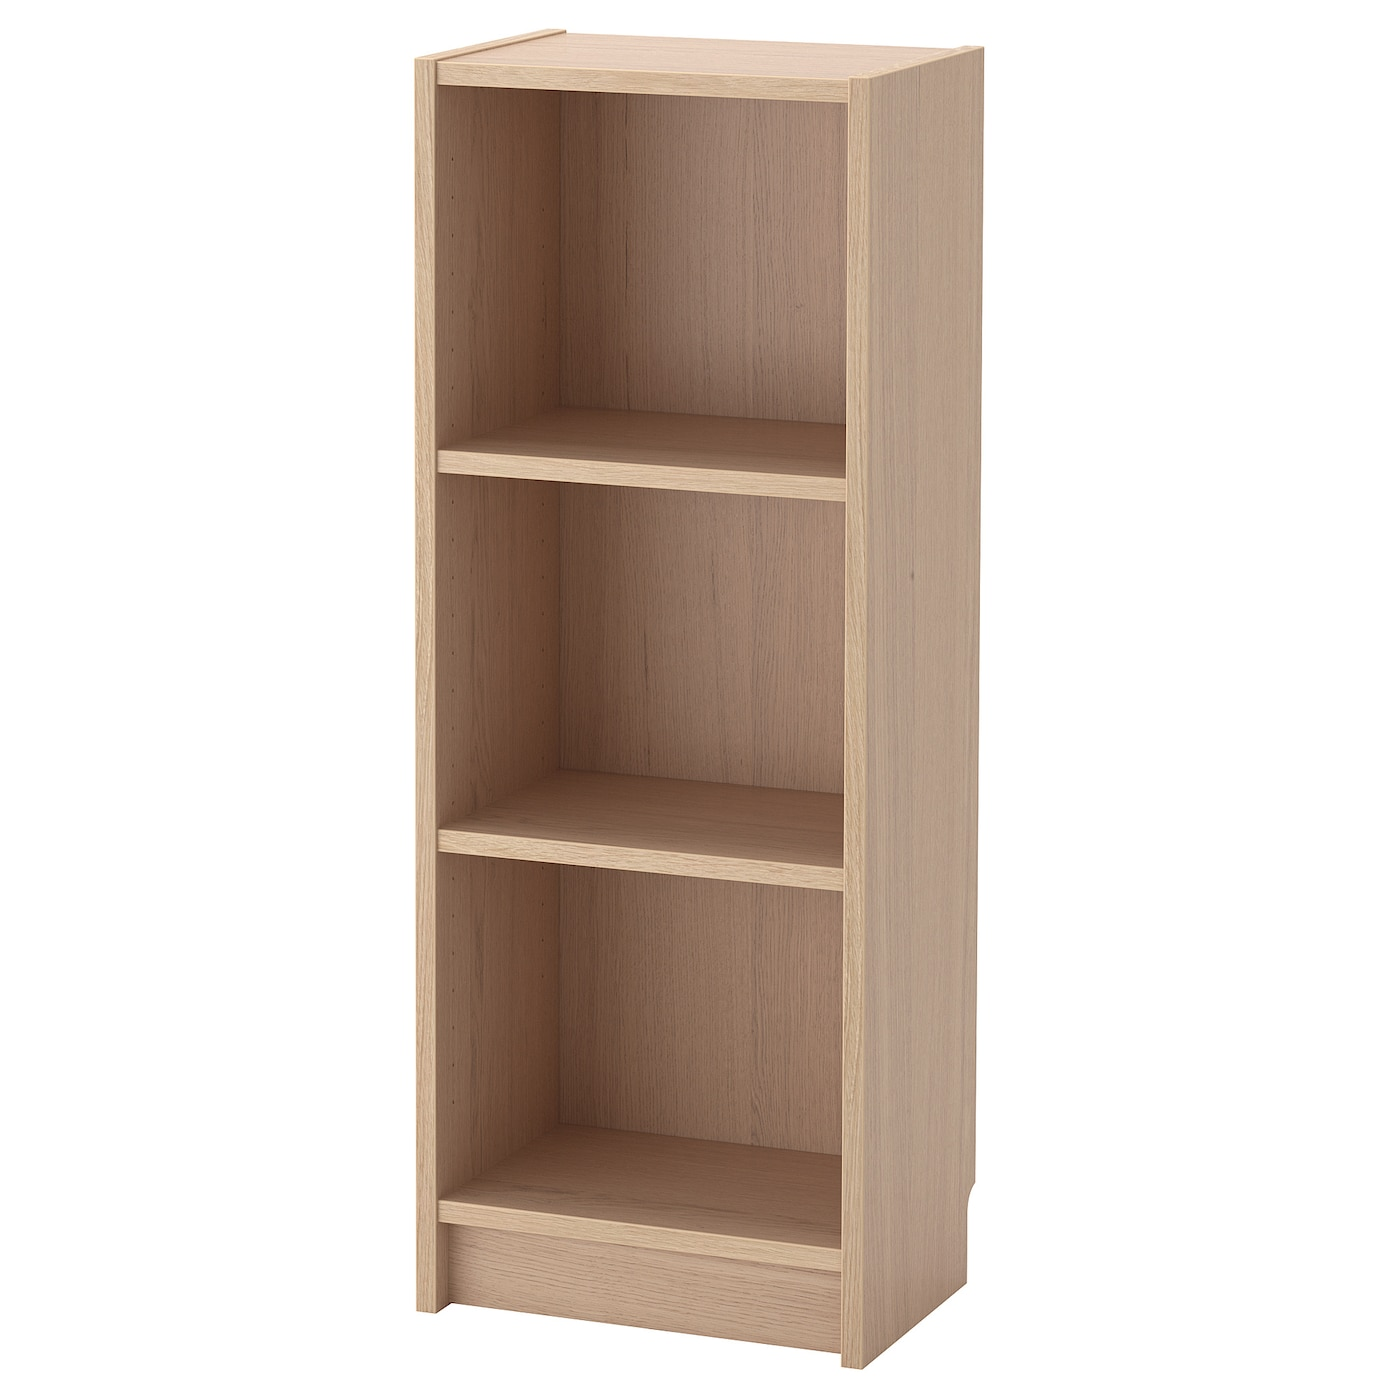 https://www.ikea.com/be/nl/images/products/billy-boekenkast-wit-gelazuurd-eikenfineer__0564812_pe664193_s5.jpg